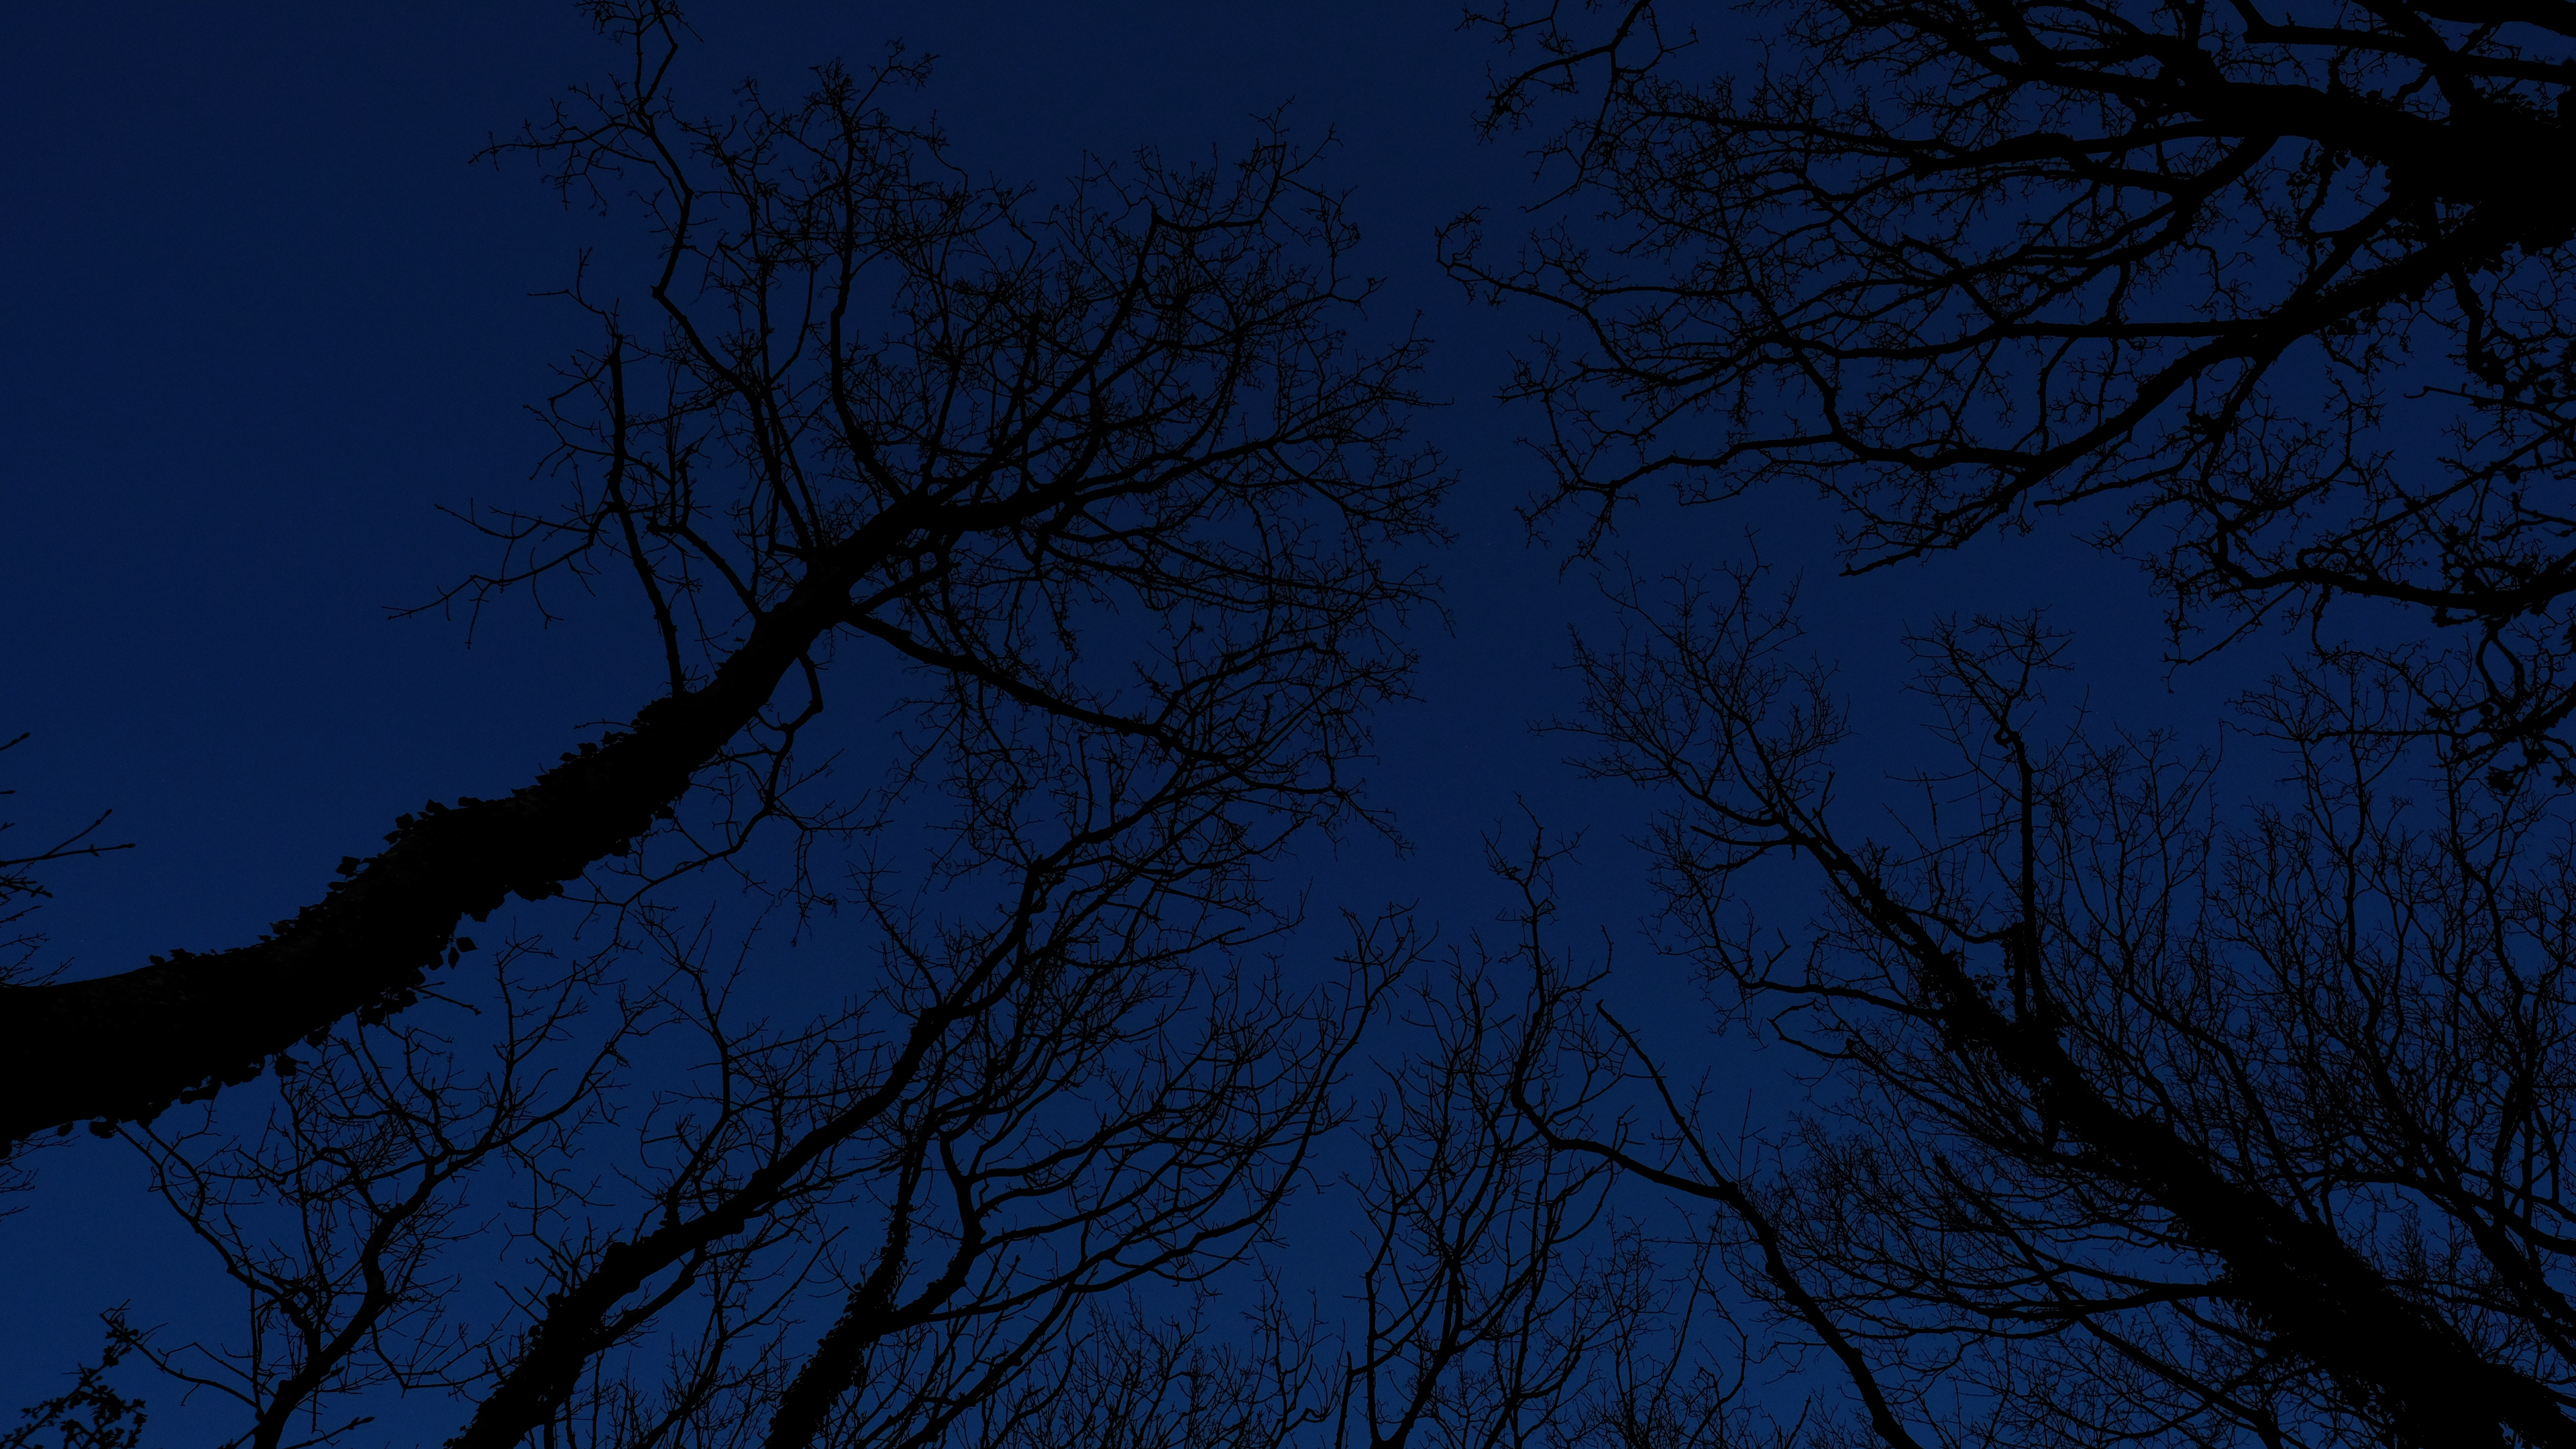 trees branches sky night 4k 1541113468 - trees, branches, sky, night 4k - Trees, Sky, branches